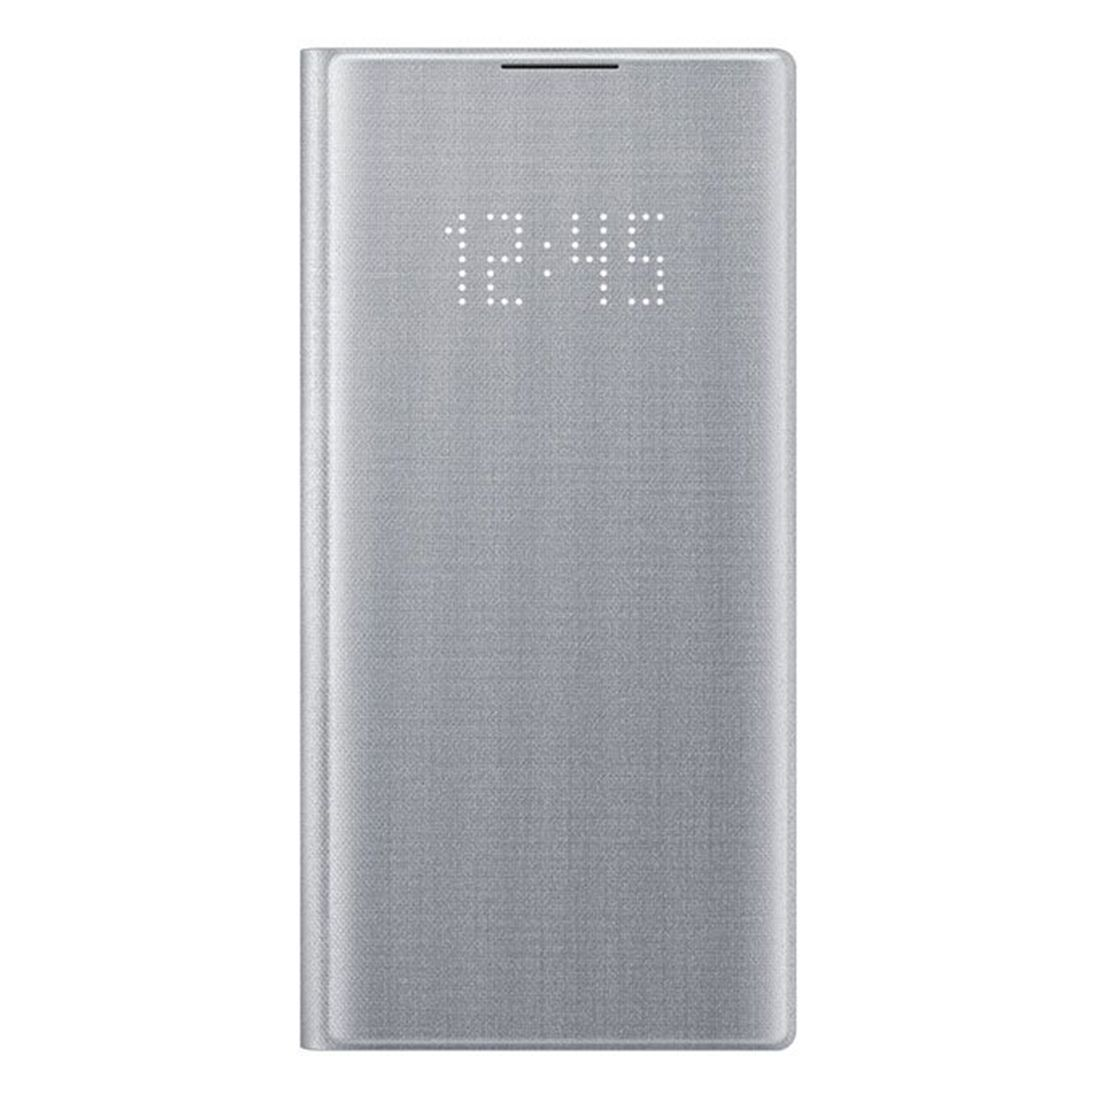 Samsung Galaxy Note 10+ Plus LED View Cover - Silver